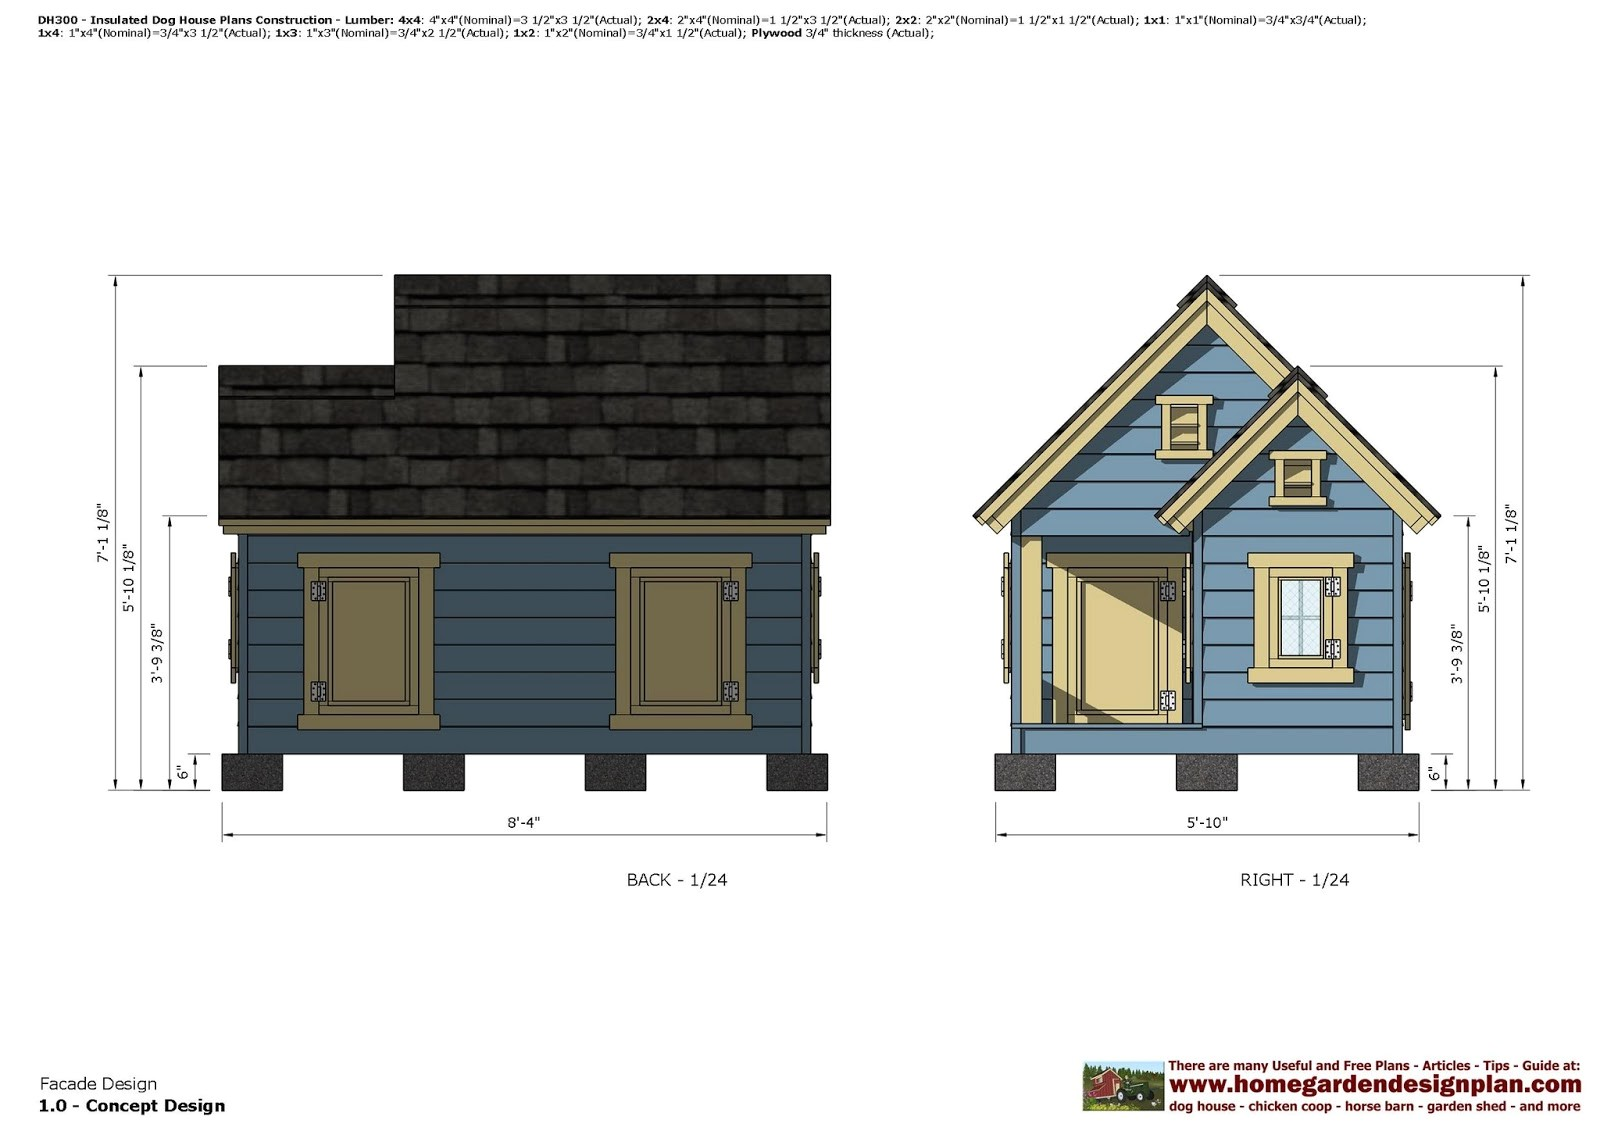 dh300 insulated dog house plans